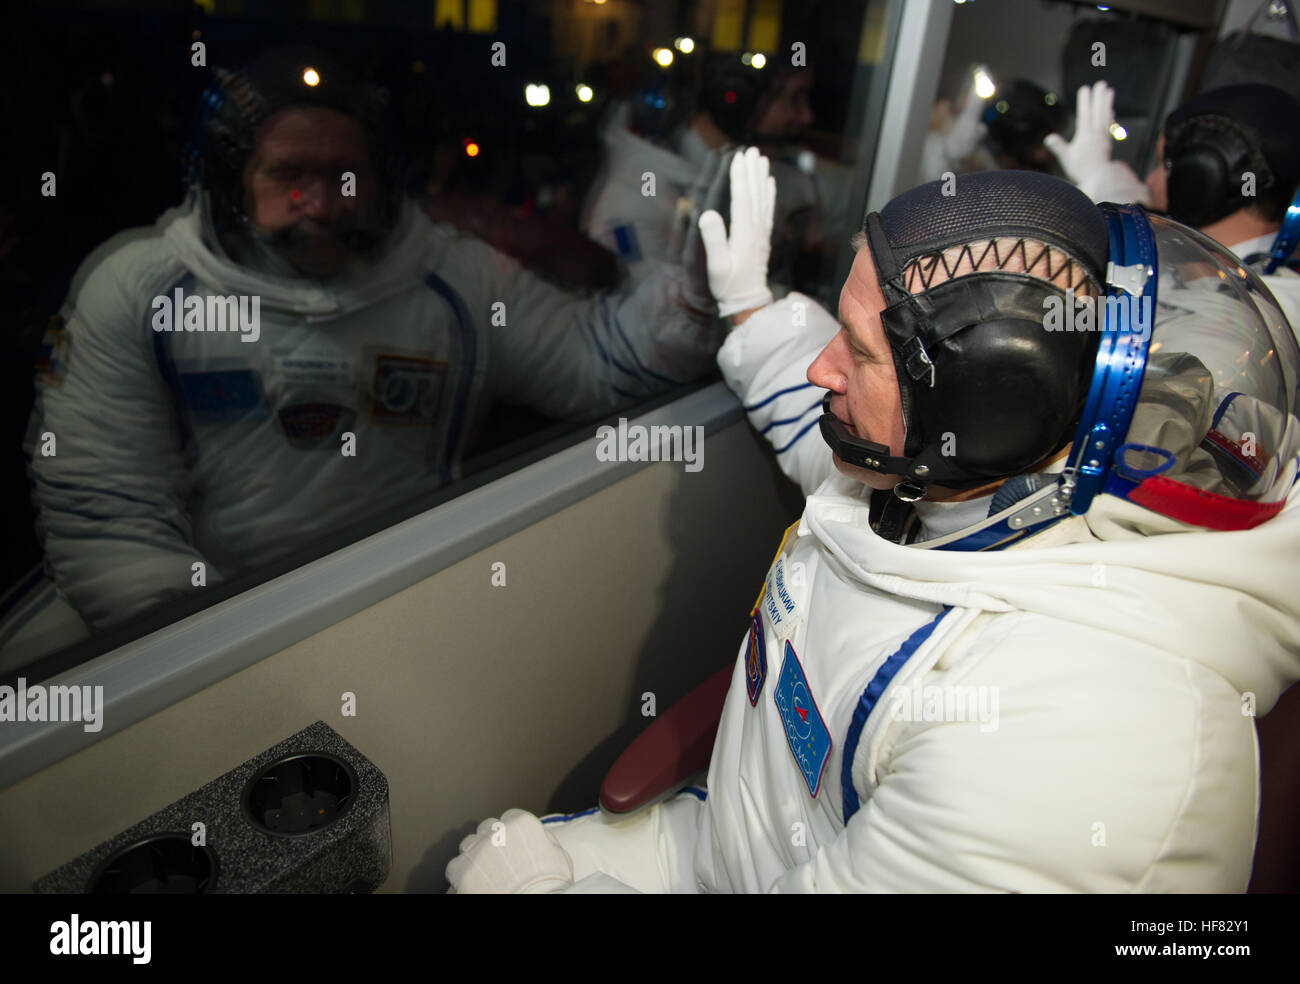 Expedition 50 Russian cosmonaut Oleg Novitskiy of Roscosmos waves farewell to friends, family, and mission managers - Stock Image